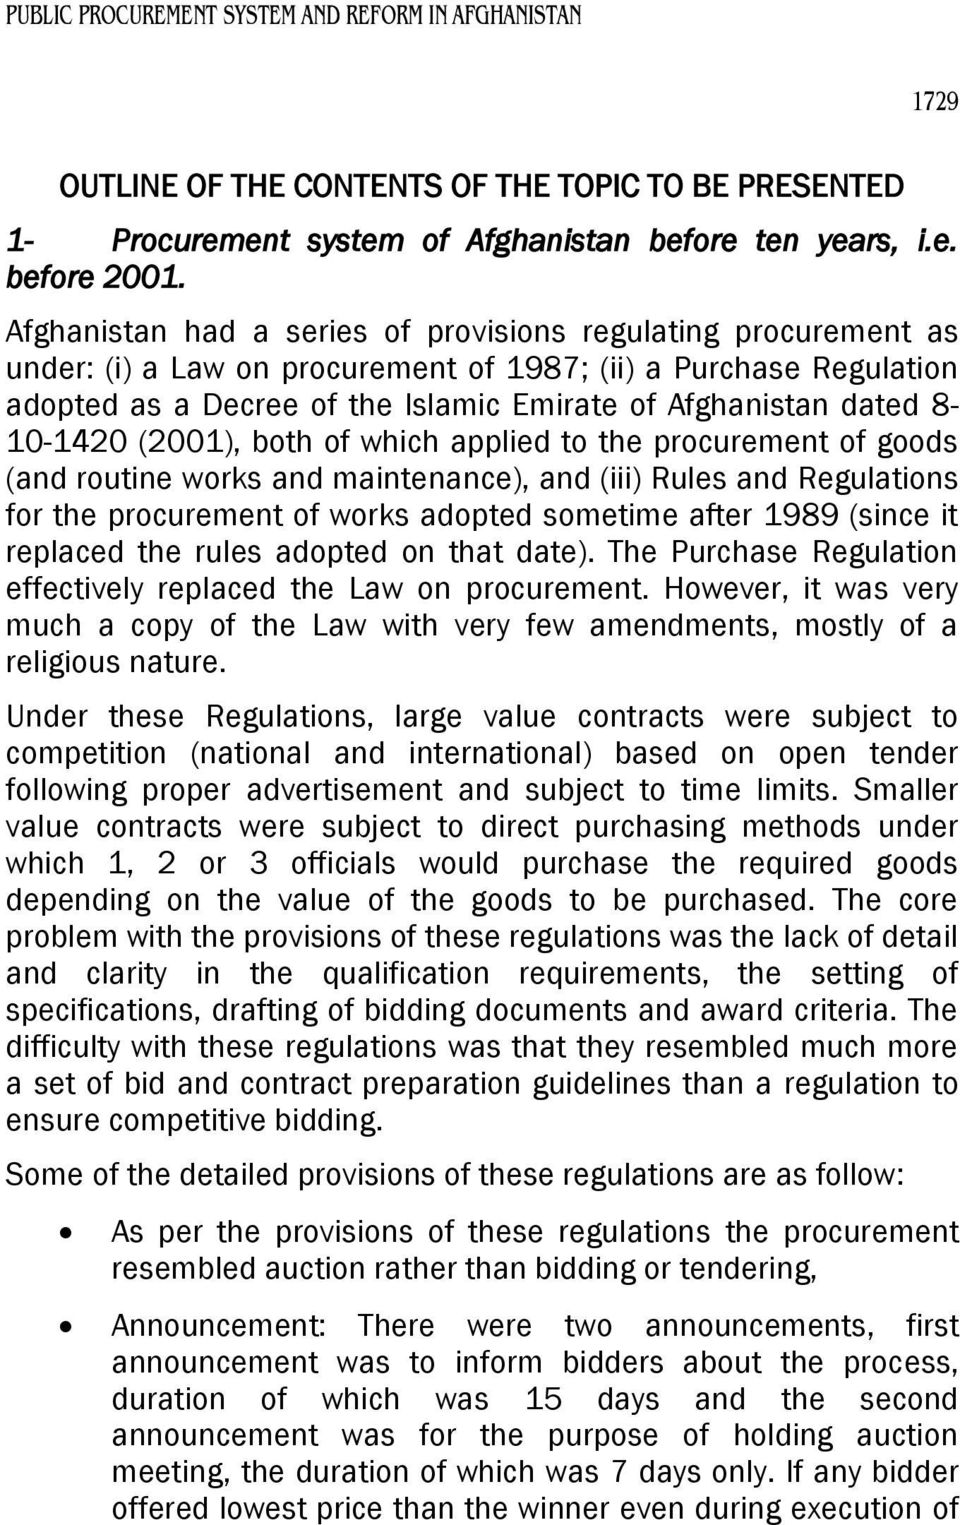 8-10-1420 (2001), both of which applied to the procurement of goods (and routine works and maintenance), and (iii) Rules and Regulations for the procurement of works adopted sometime after 1989